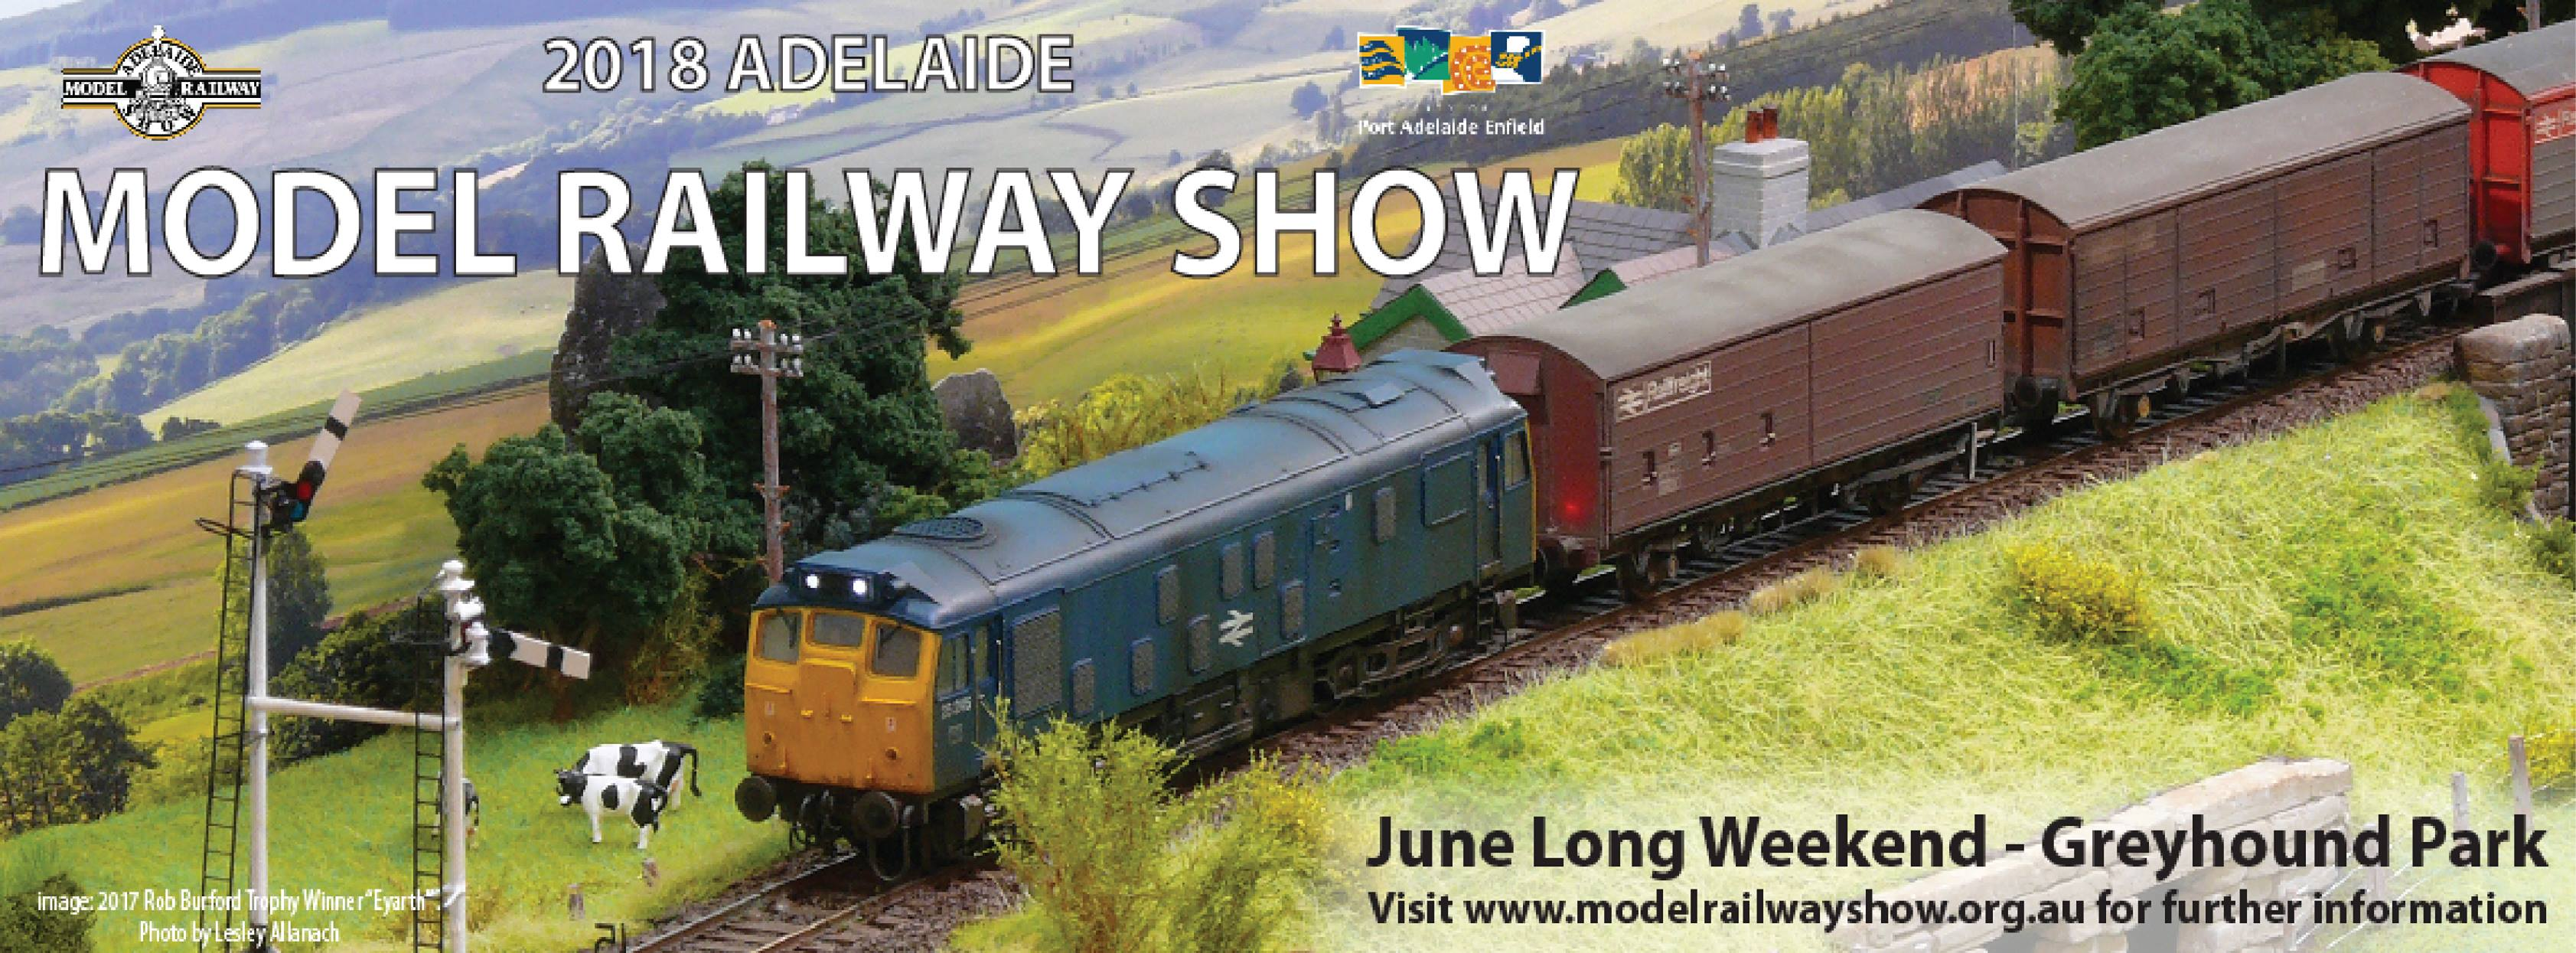 Adelaide Model Railway Exhibition 2018